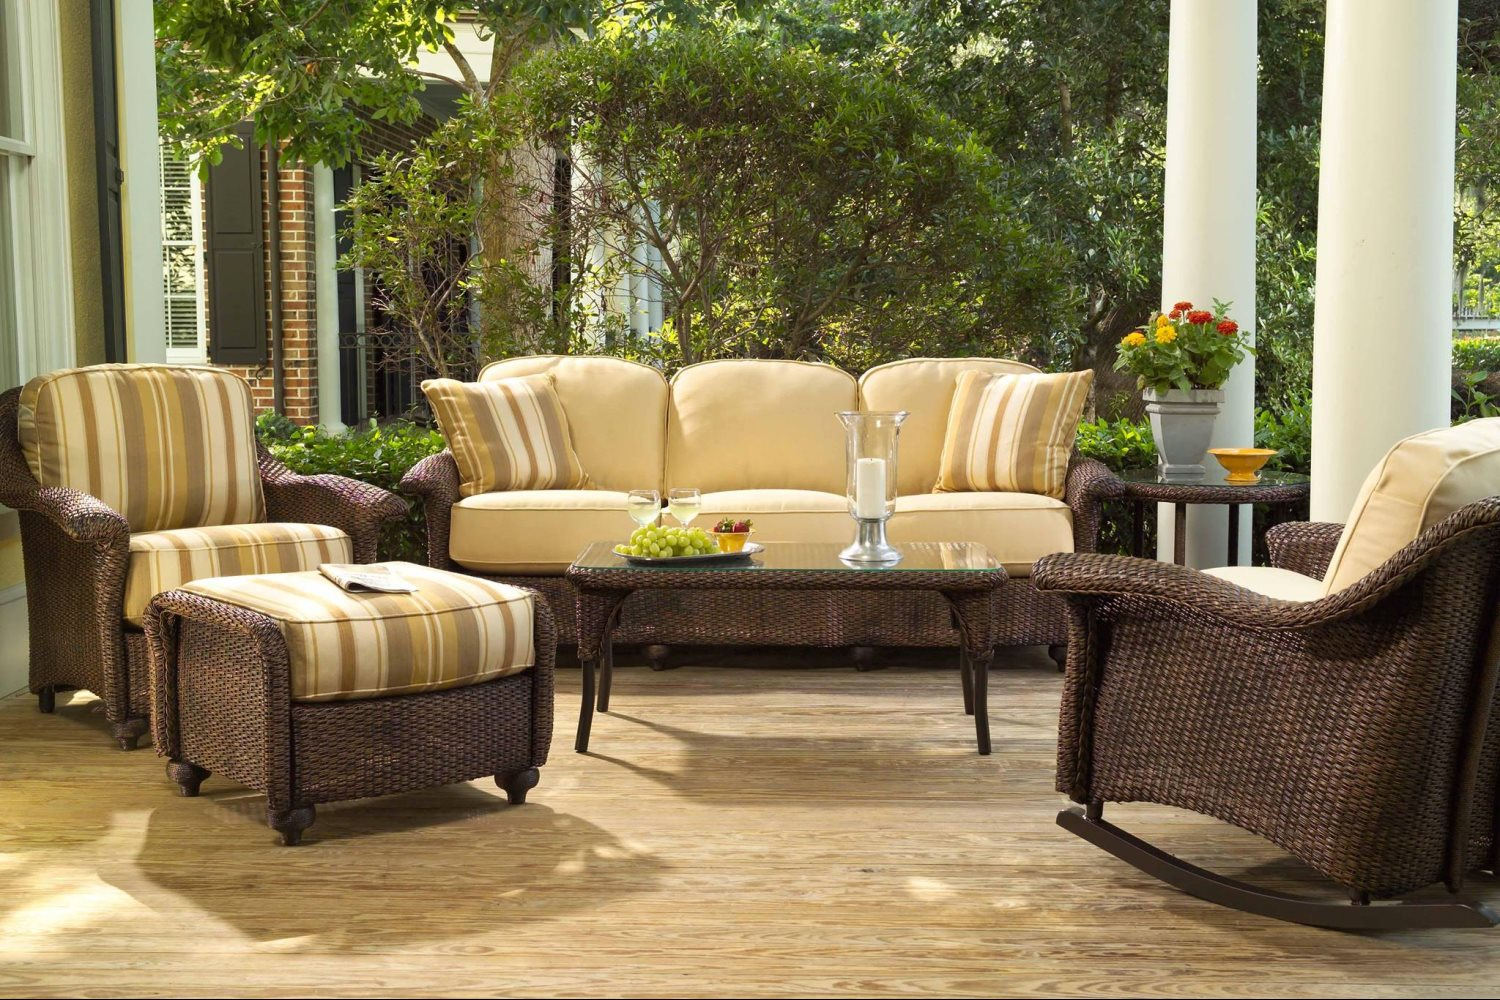 Patio Furniture Outdoor Seating Dining Patio Furniture Outdoor Dining